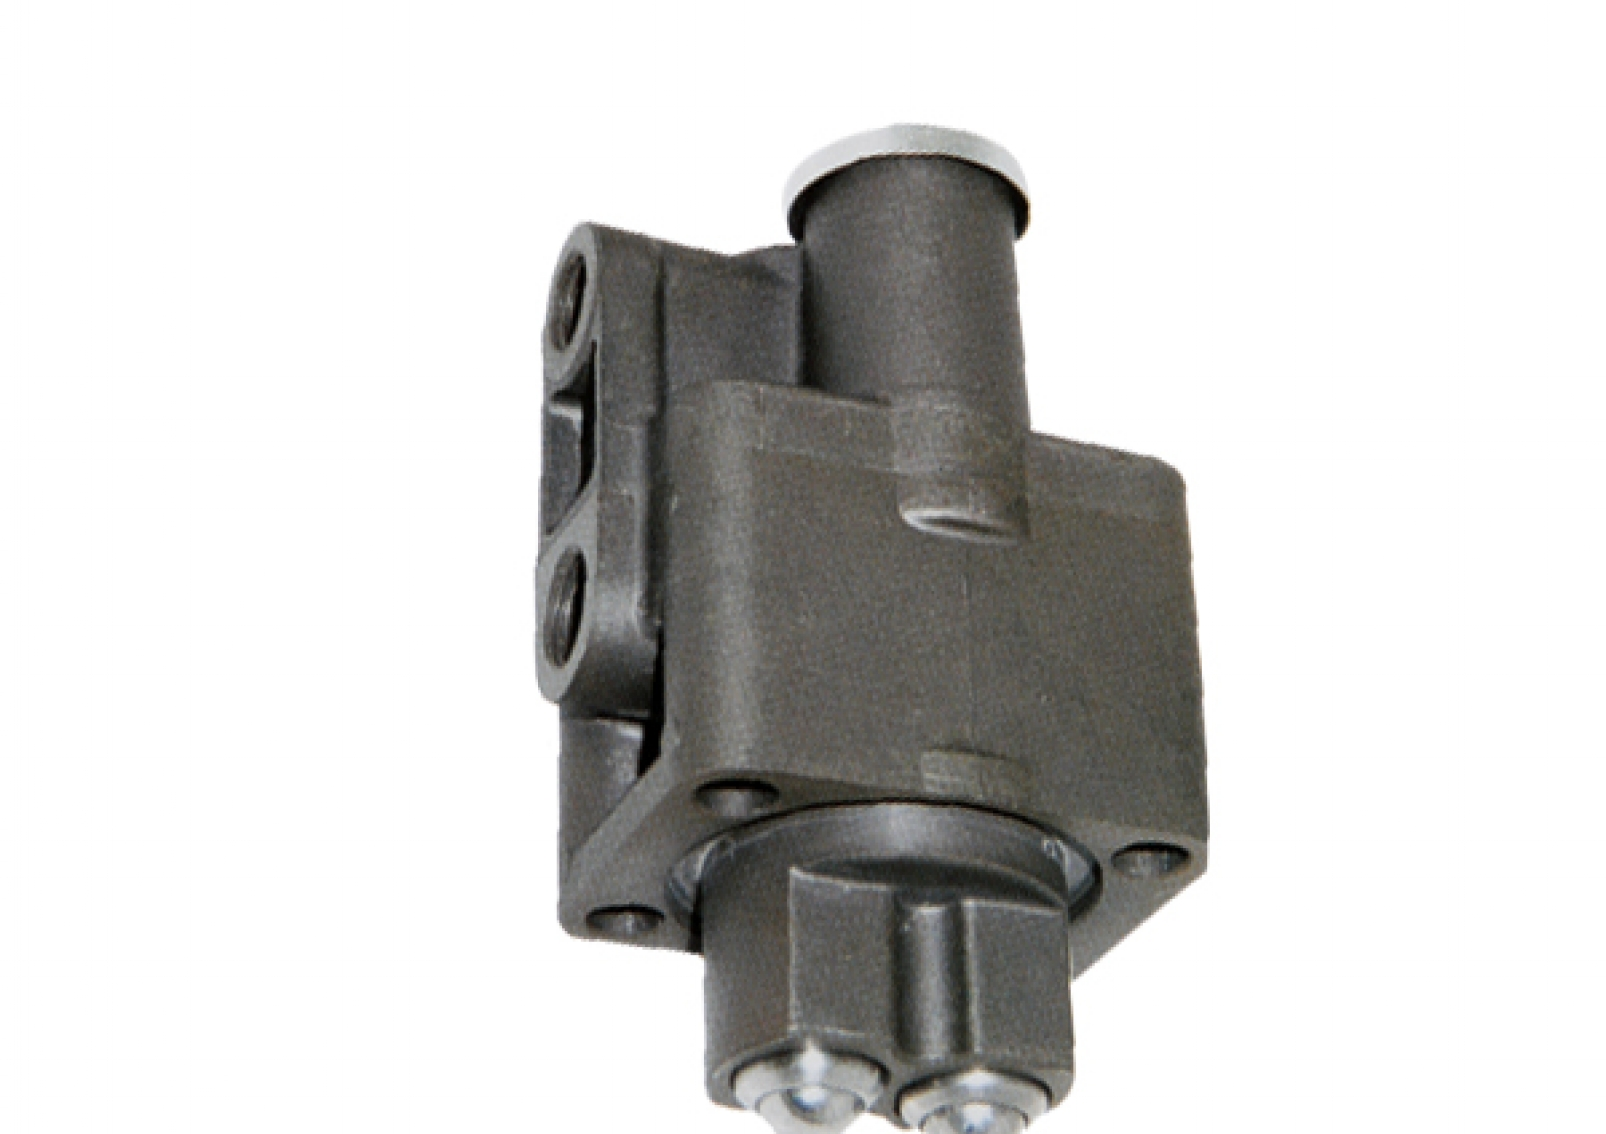 Gearbox Valve Unit for Daf, 6038 202 042, 1609886